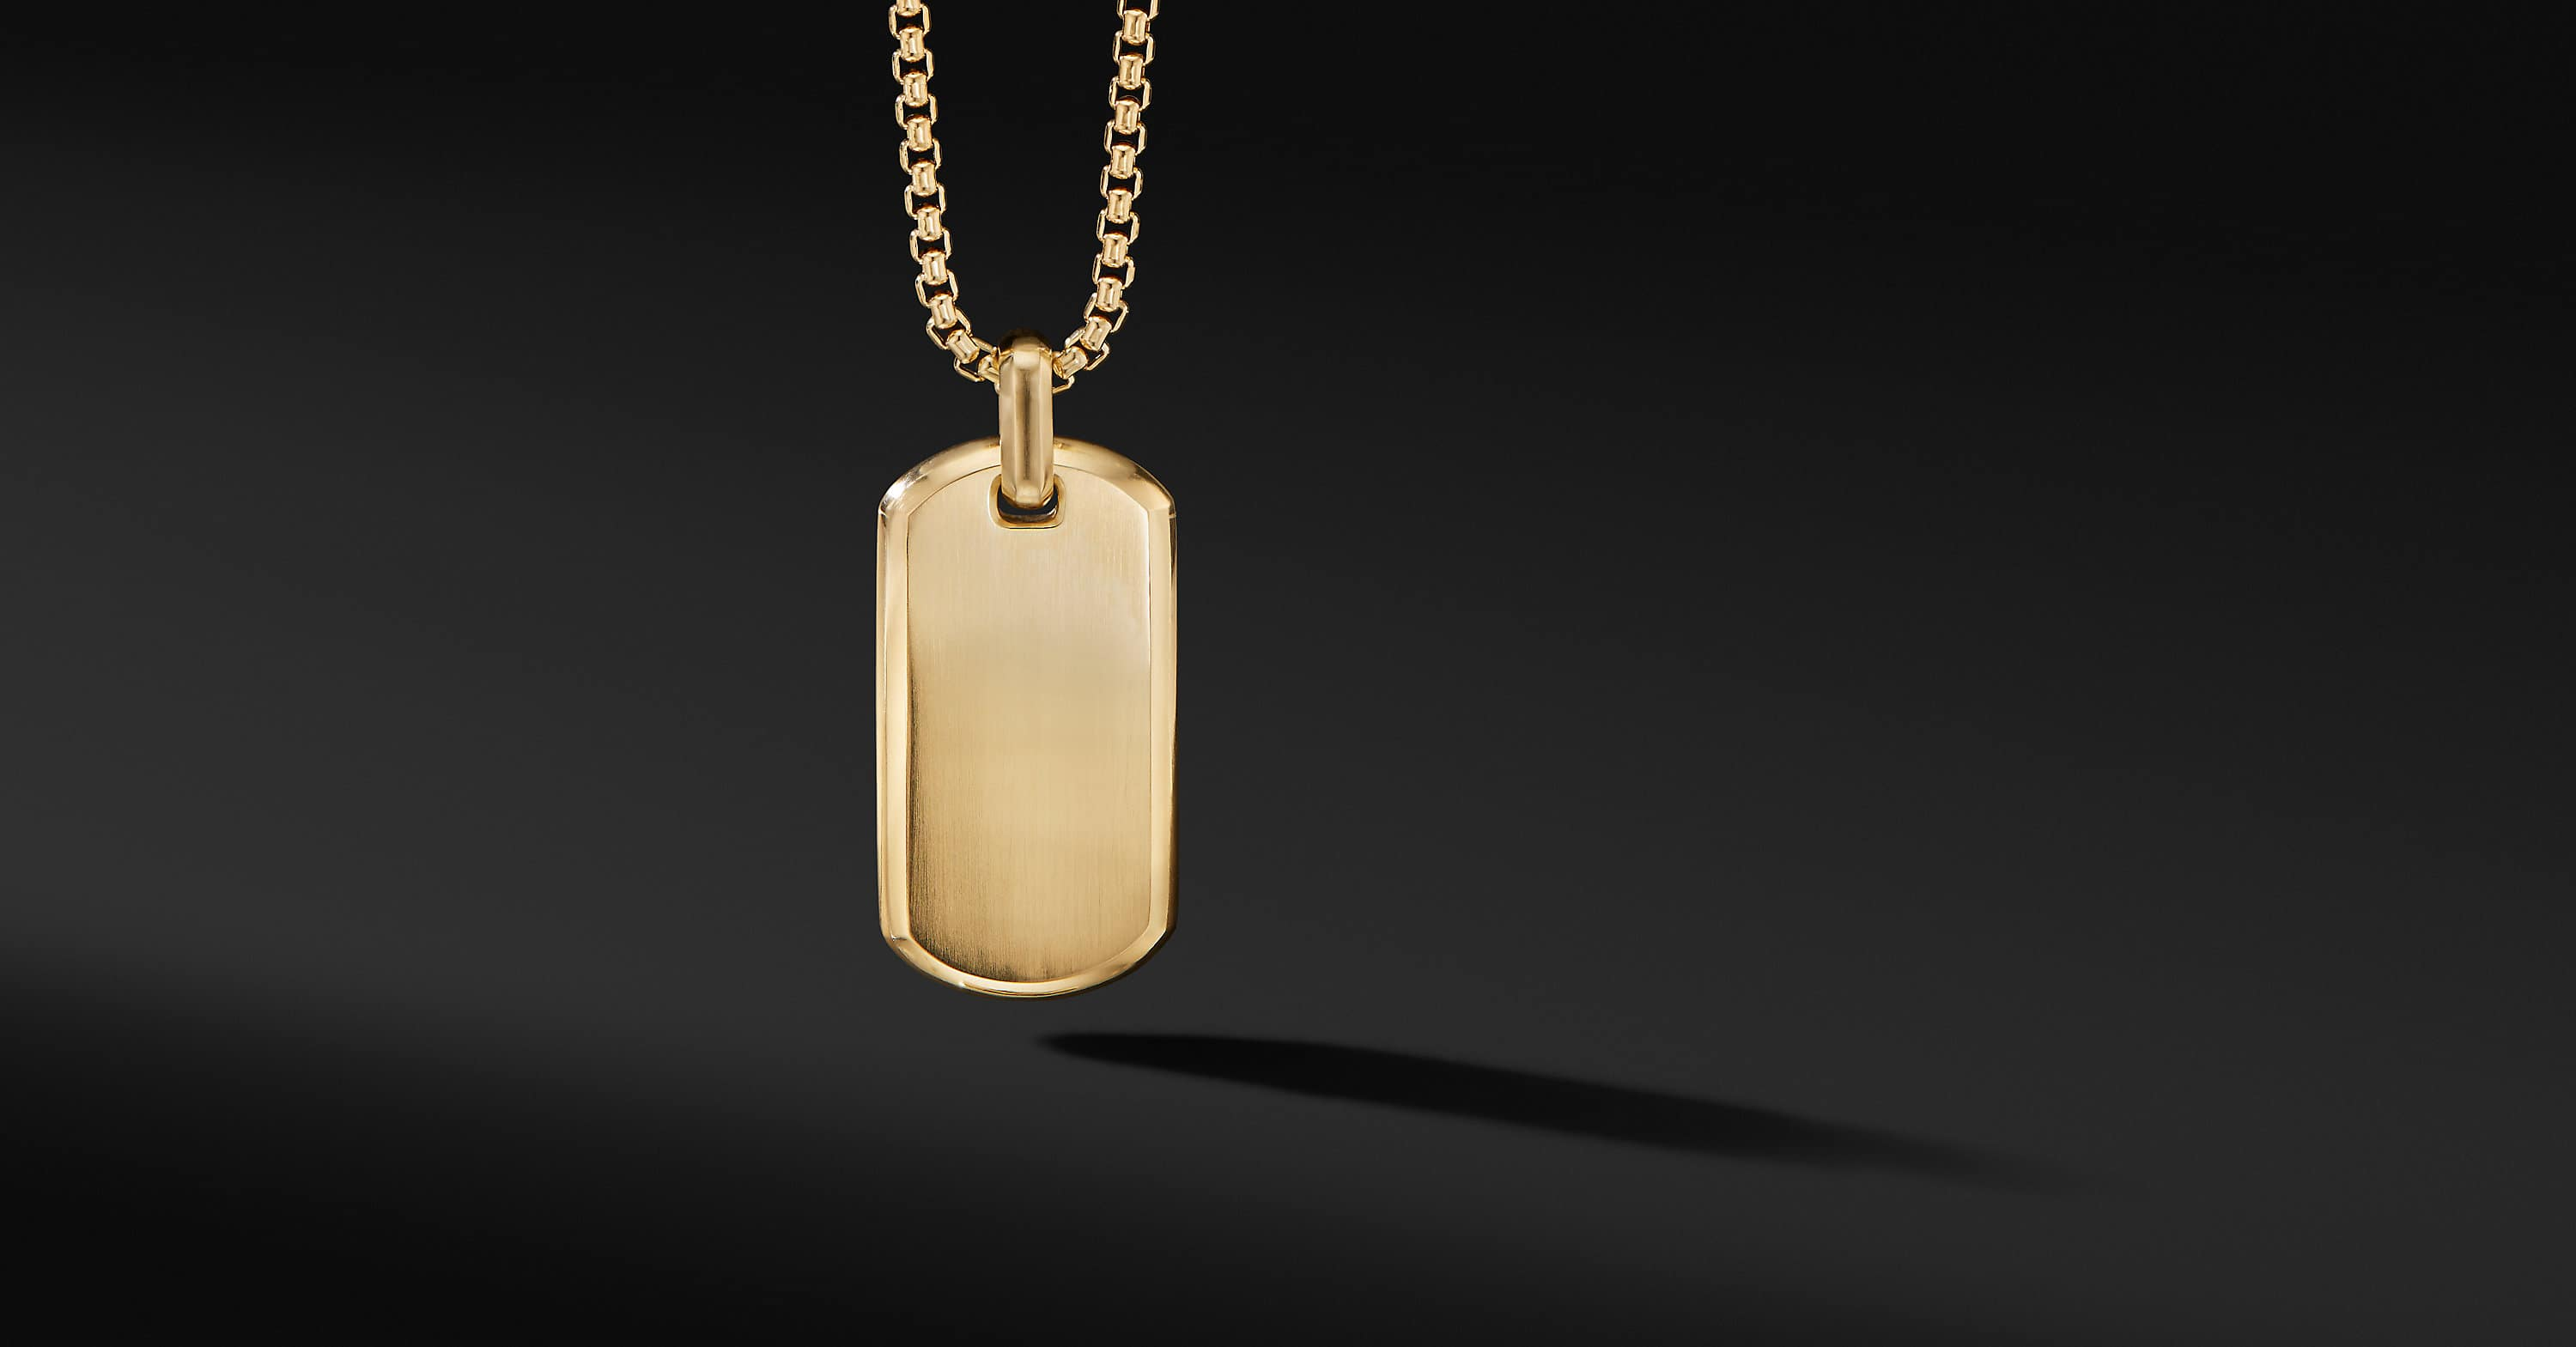 Streamline Tag in 18K Yellow Gold, 35mm